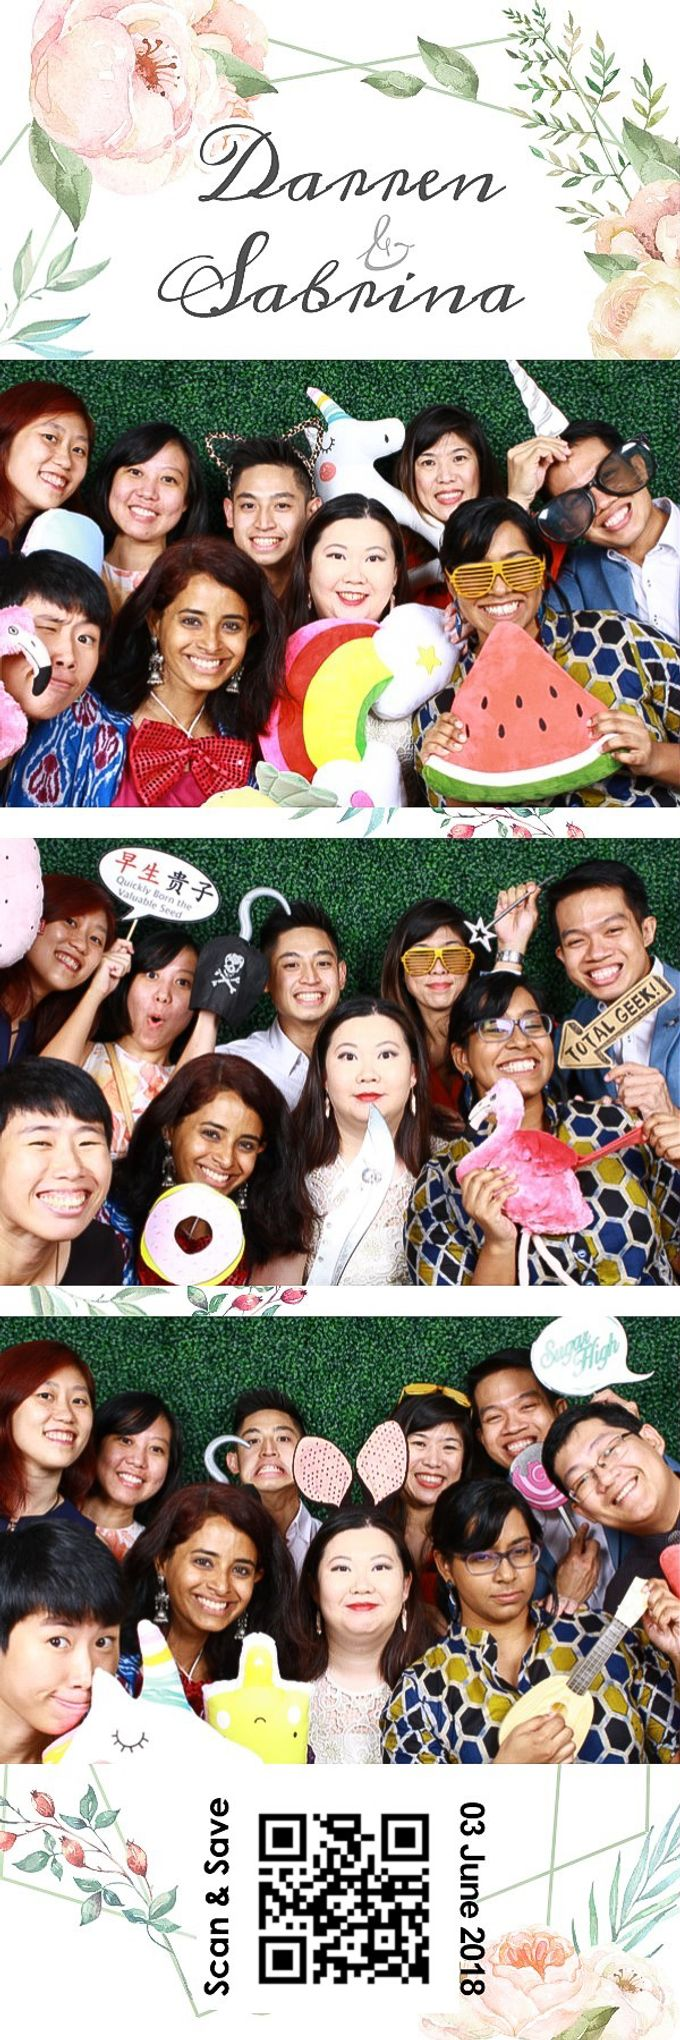 Darren & Sabrina Wedding Photo Booth by Cloud Booth - 001